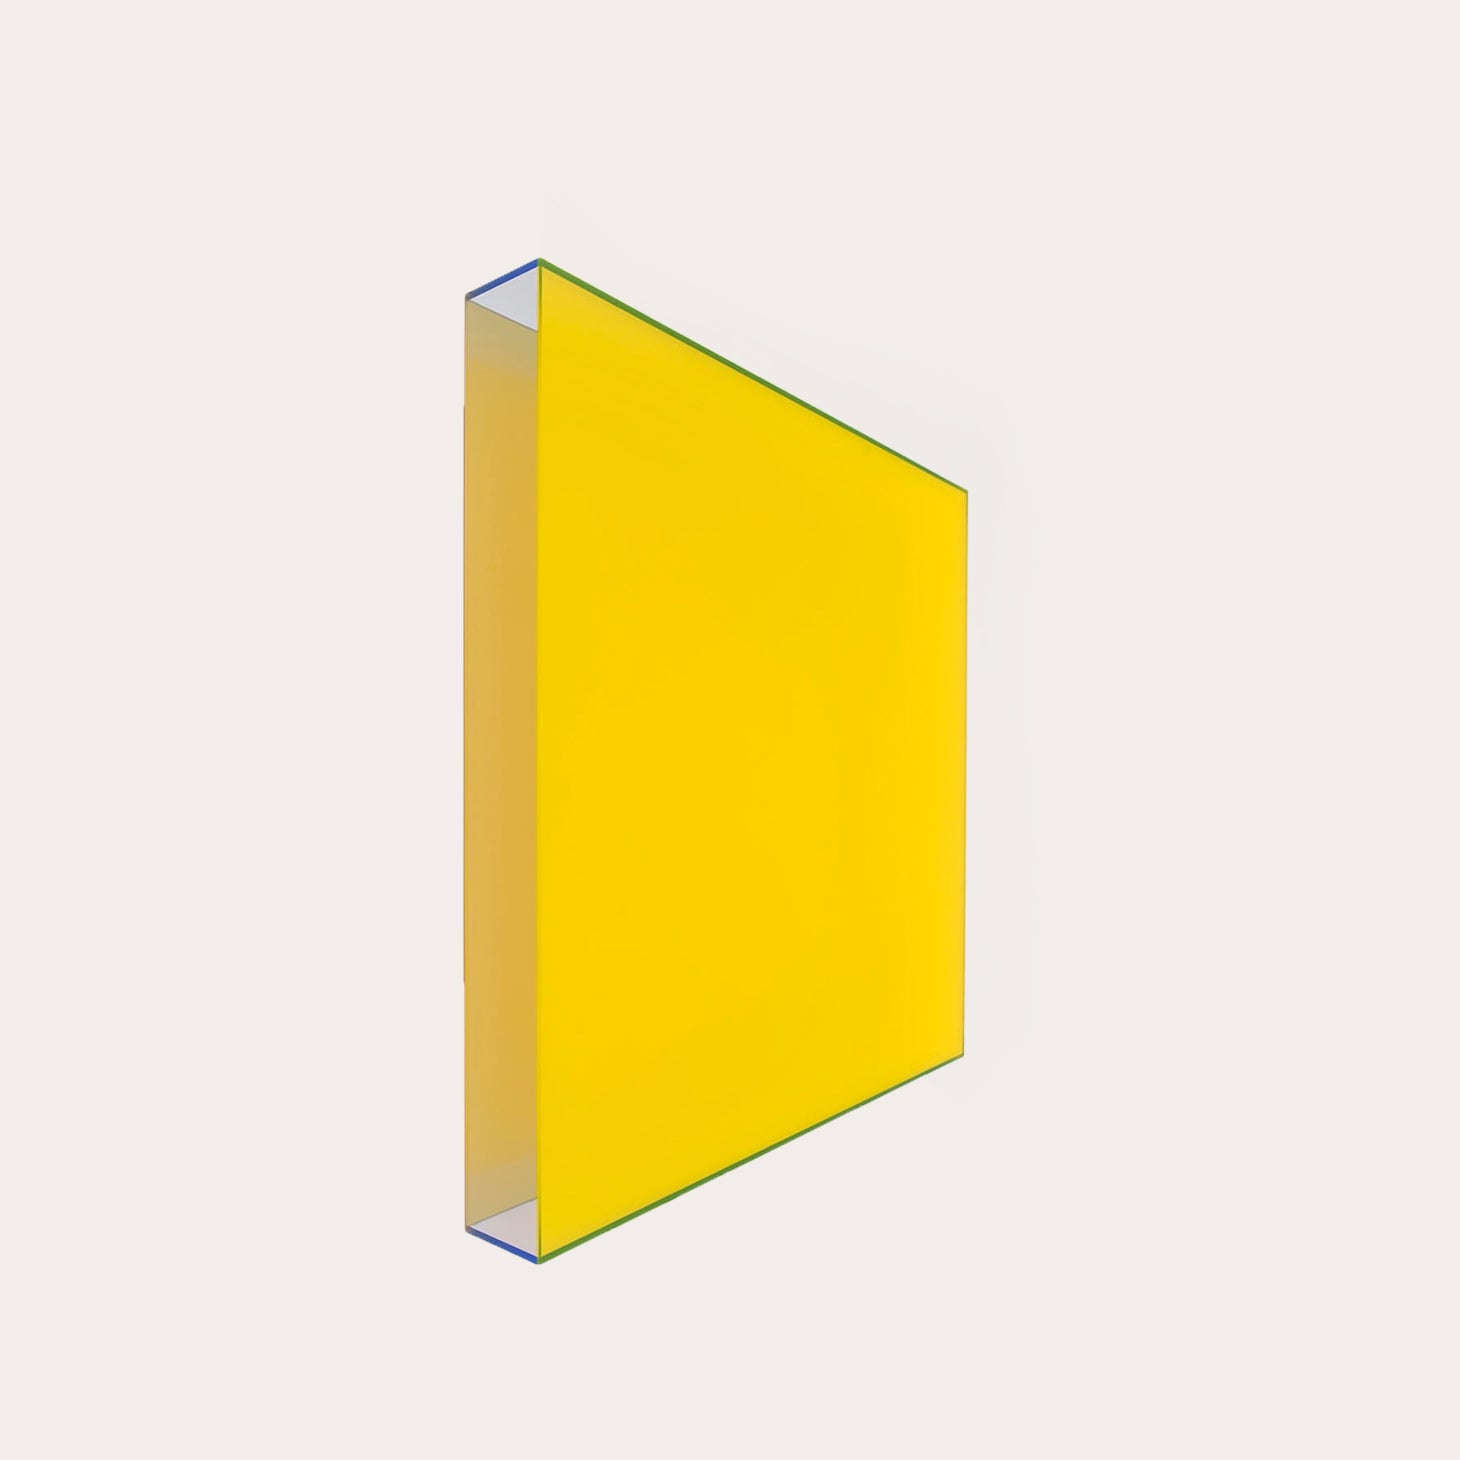 Colormirror Farbrausch V Yellow, Blue, 2010 Artwork Regine Schumann Designer Furniture Sku: 779-270-10014